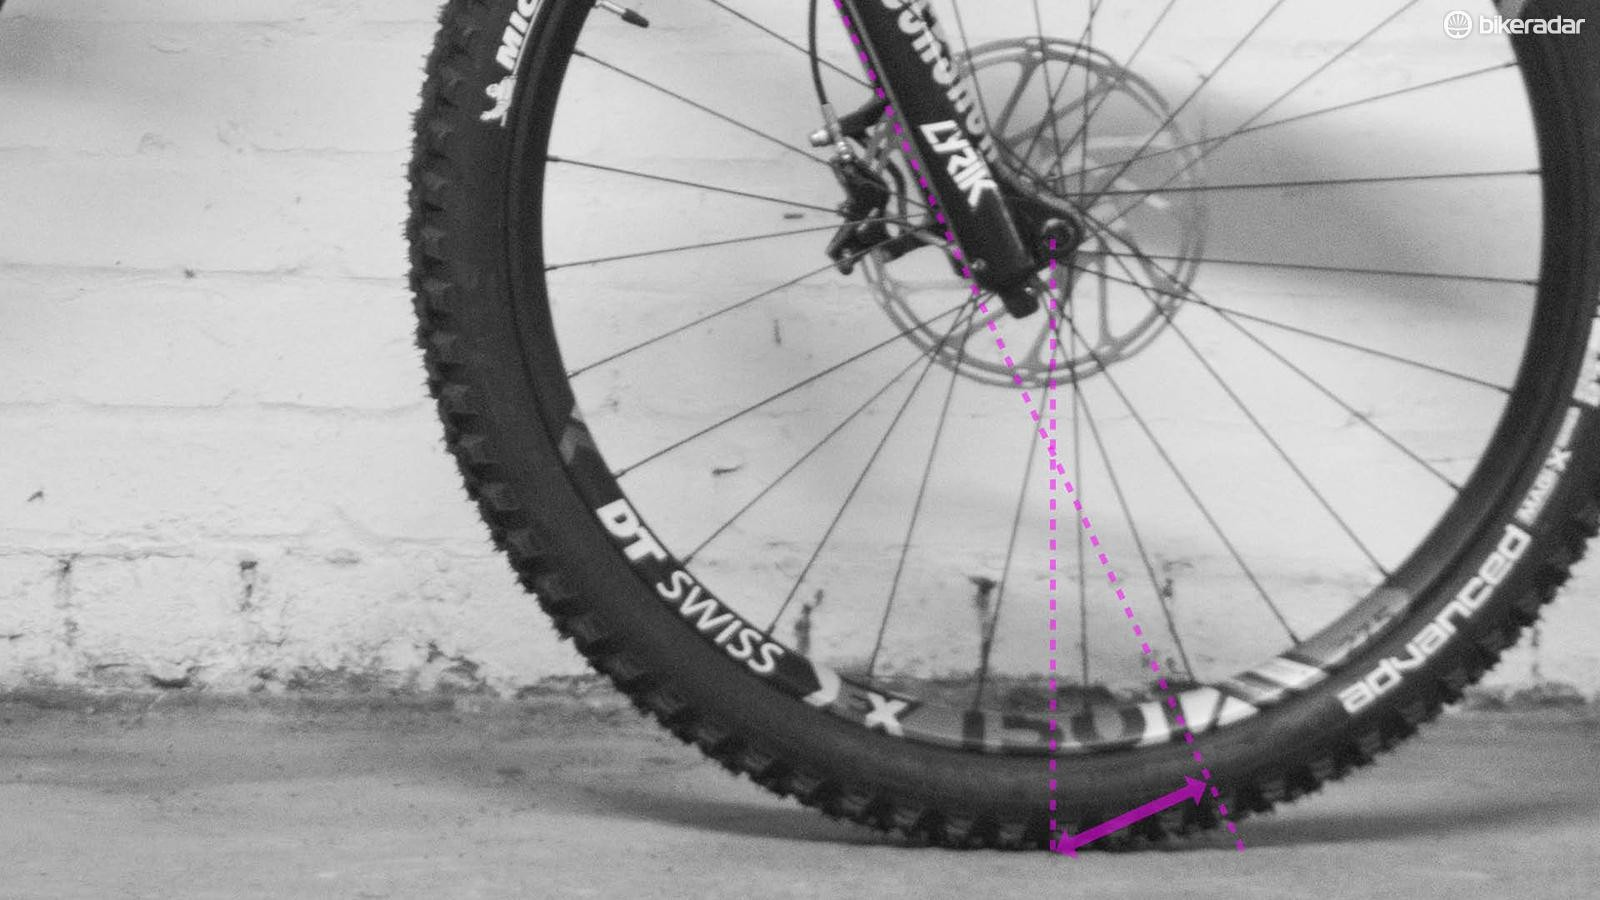 The line from the contact patch directly to the steering axis is the 'virtual lever' that determines the caster and flop of the front wheel